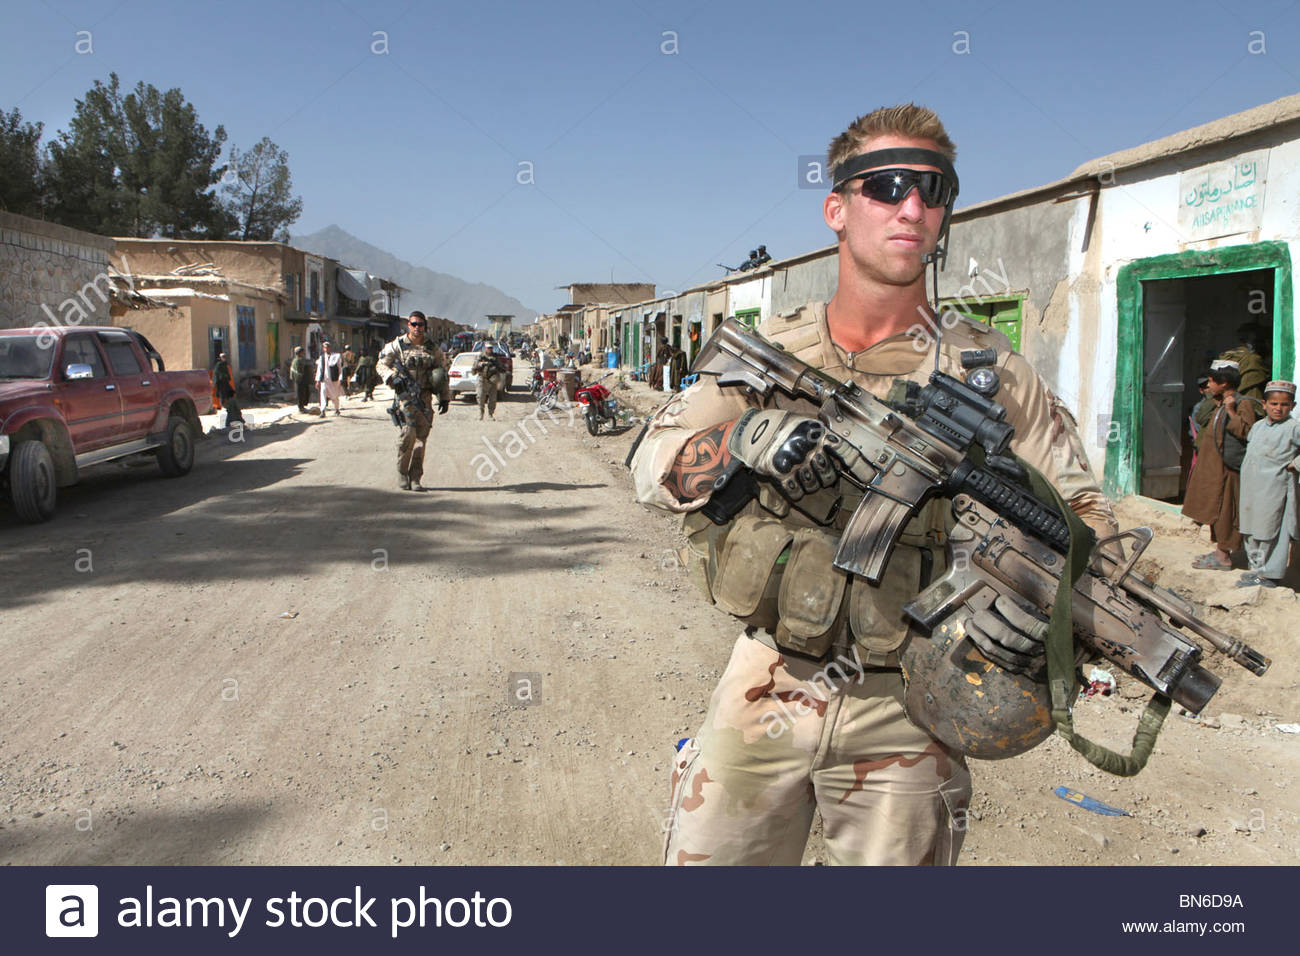 dutch-military-in-uruzgan-afghanistan-BN6D9A